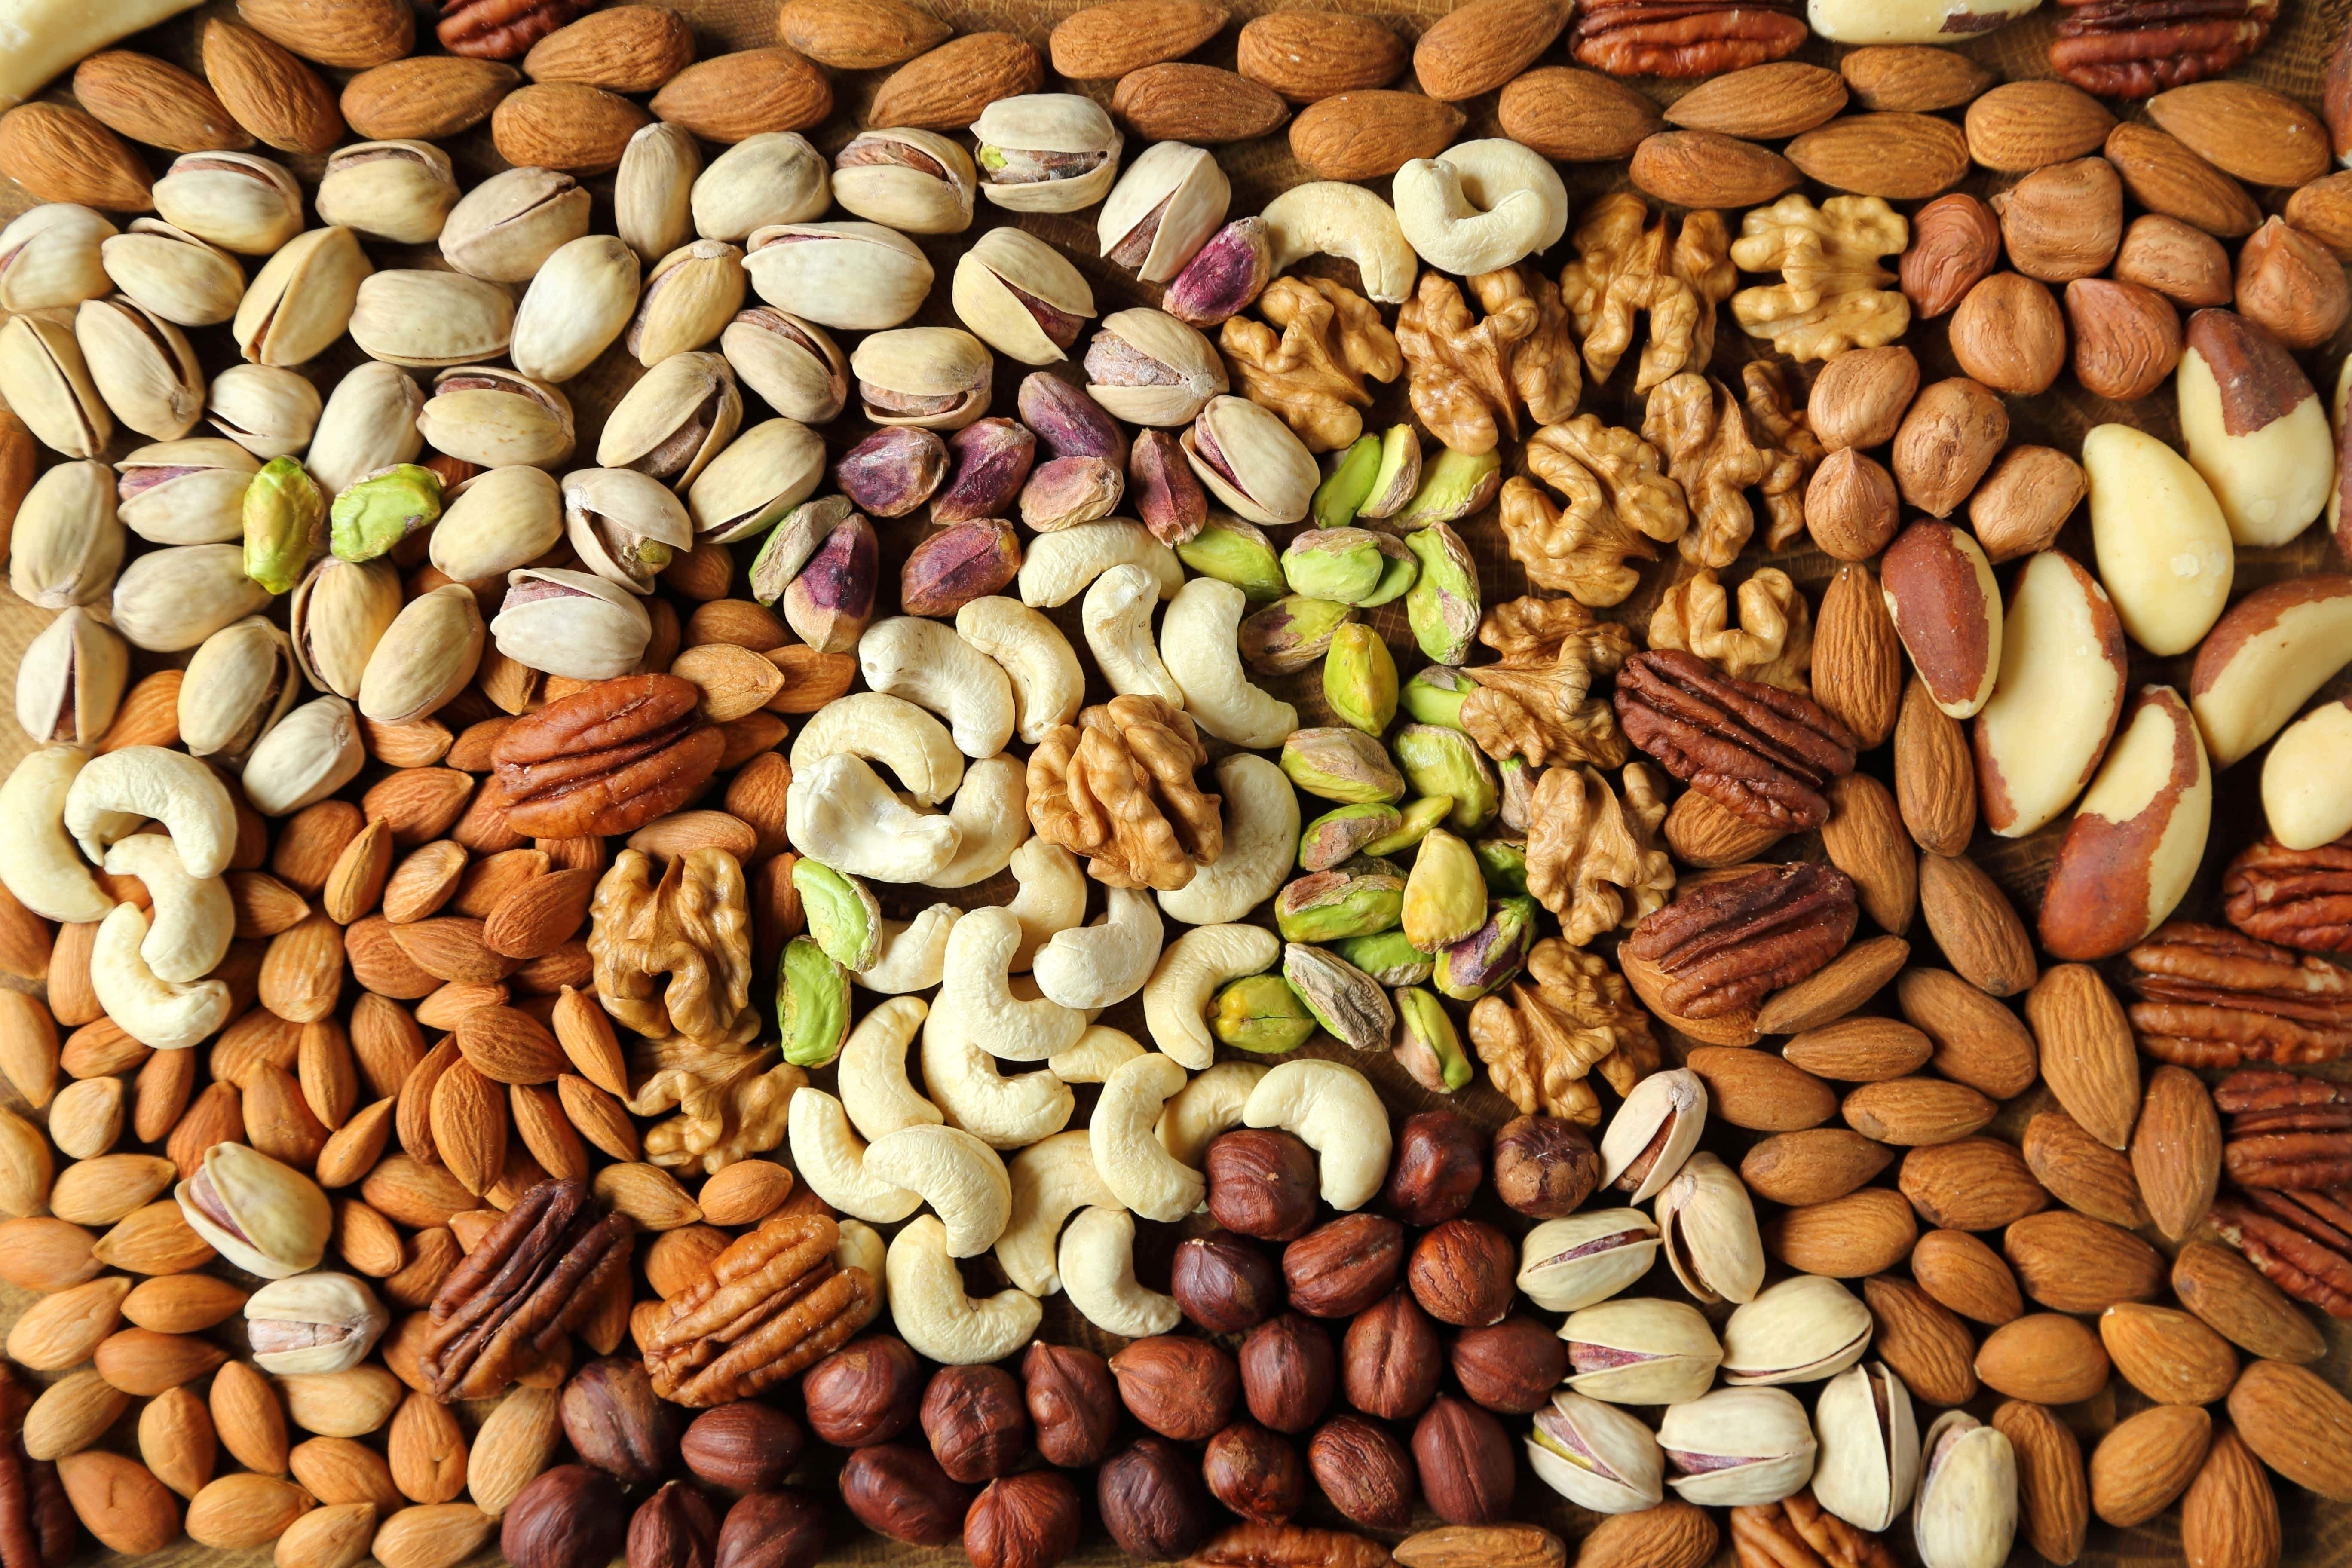 Rise Credit >> Are nuts a healthy alternative for free-from diets? - Food Processing Technology